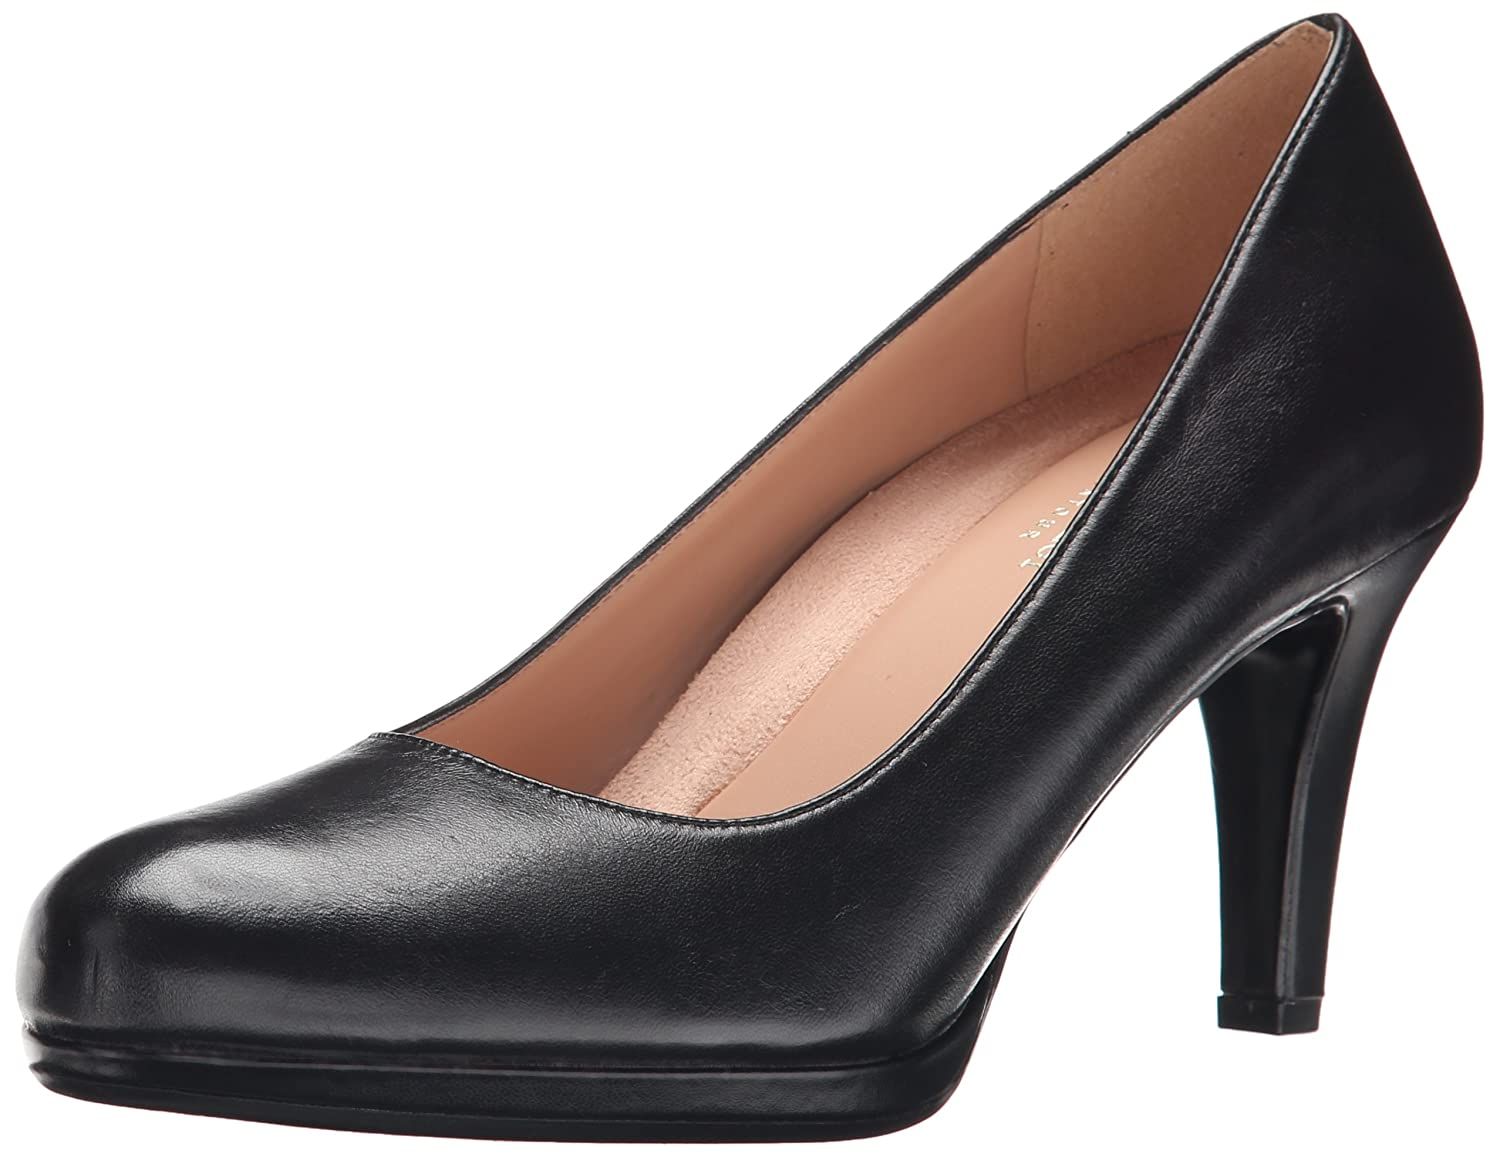 Naturalizer Women's Michelle Dress Pump B00RBVIV02 11 N US|Black Leather